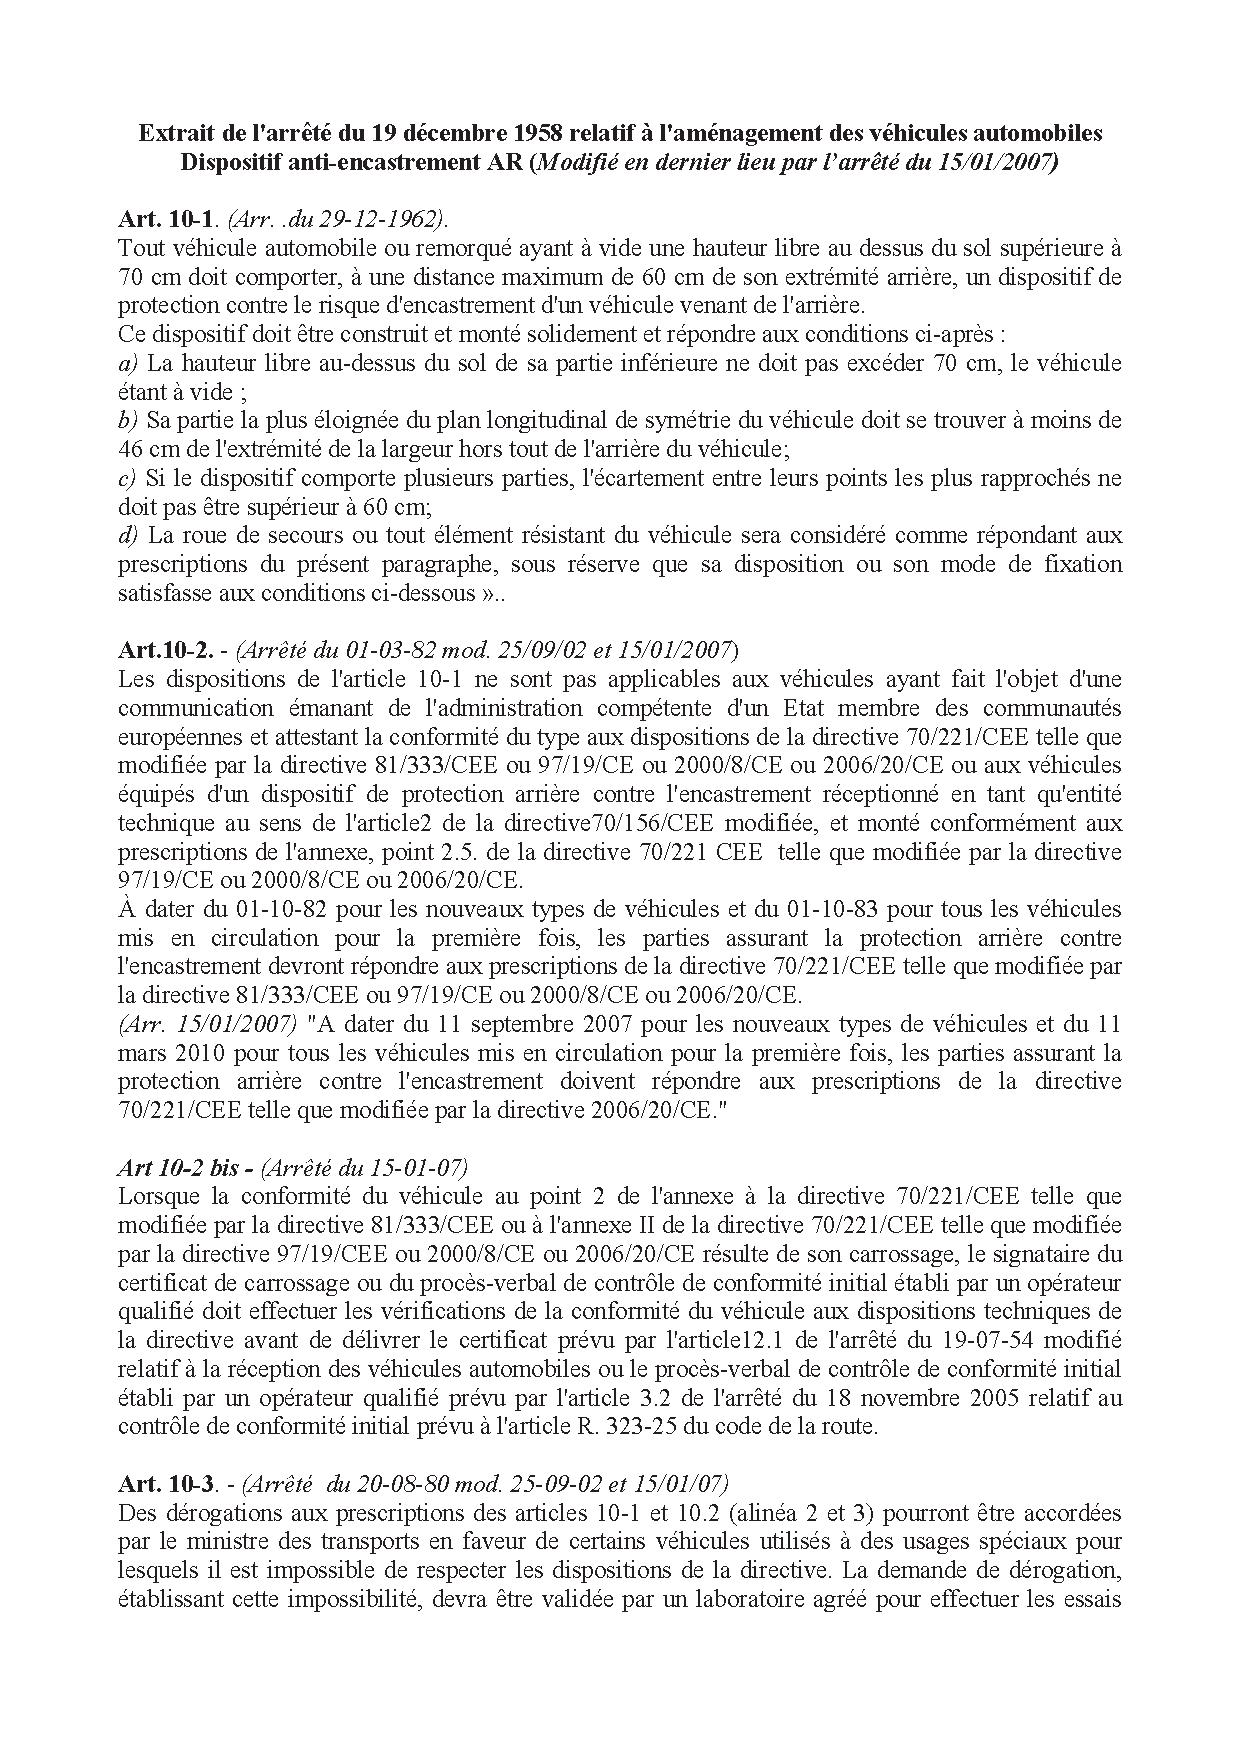 19-12-58+Extrait+BAE+Arriere+consolide+15-01-07[1].jpg